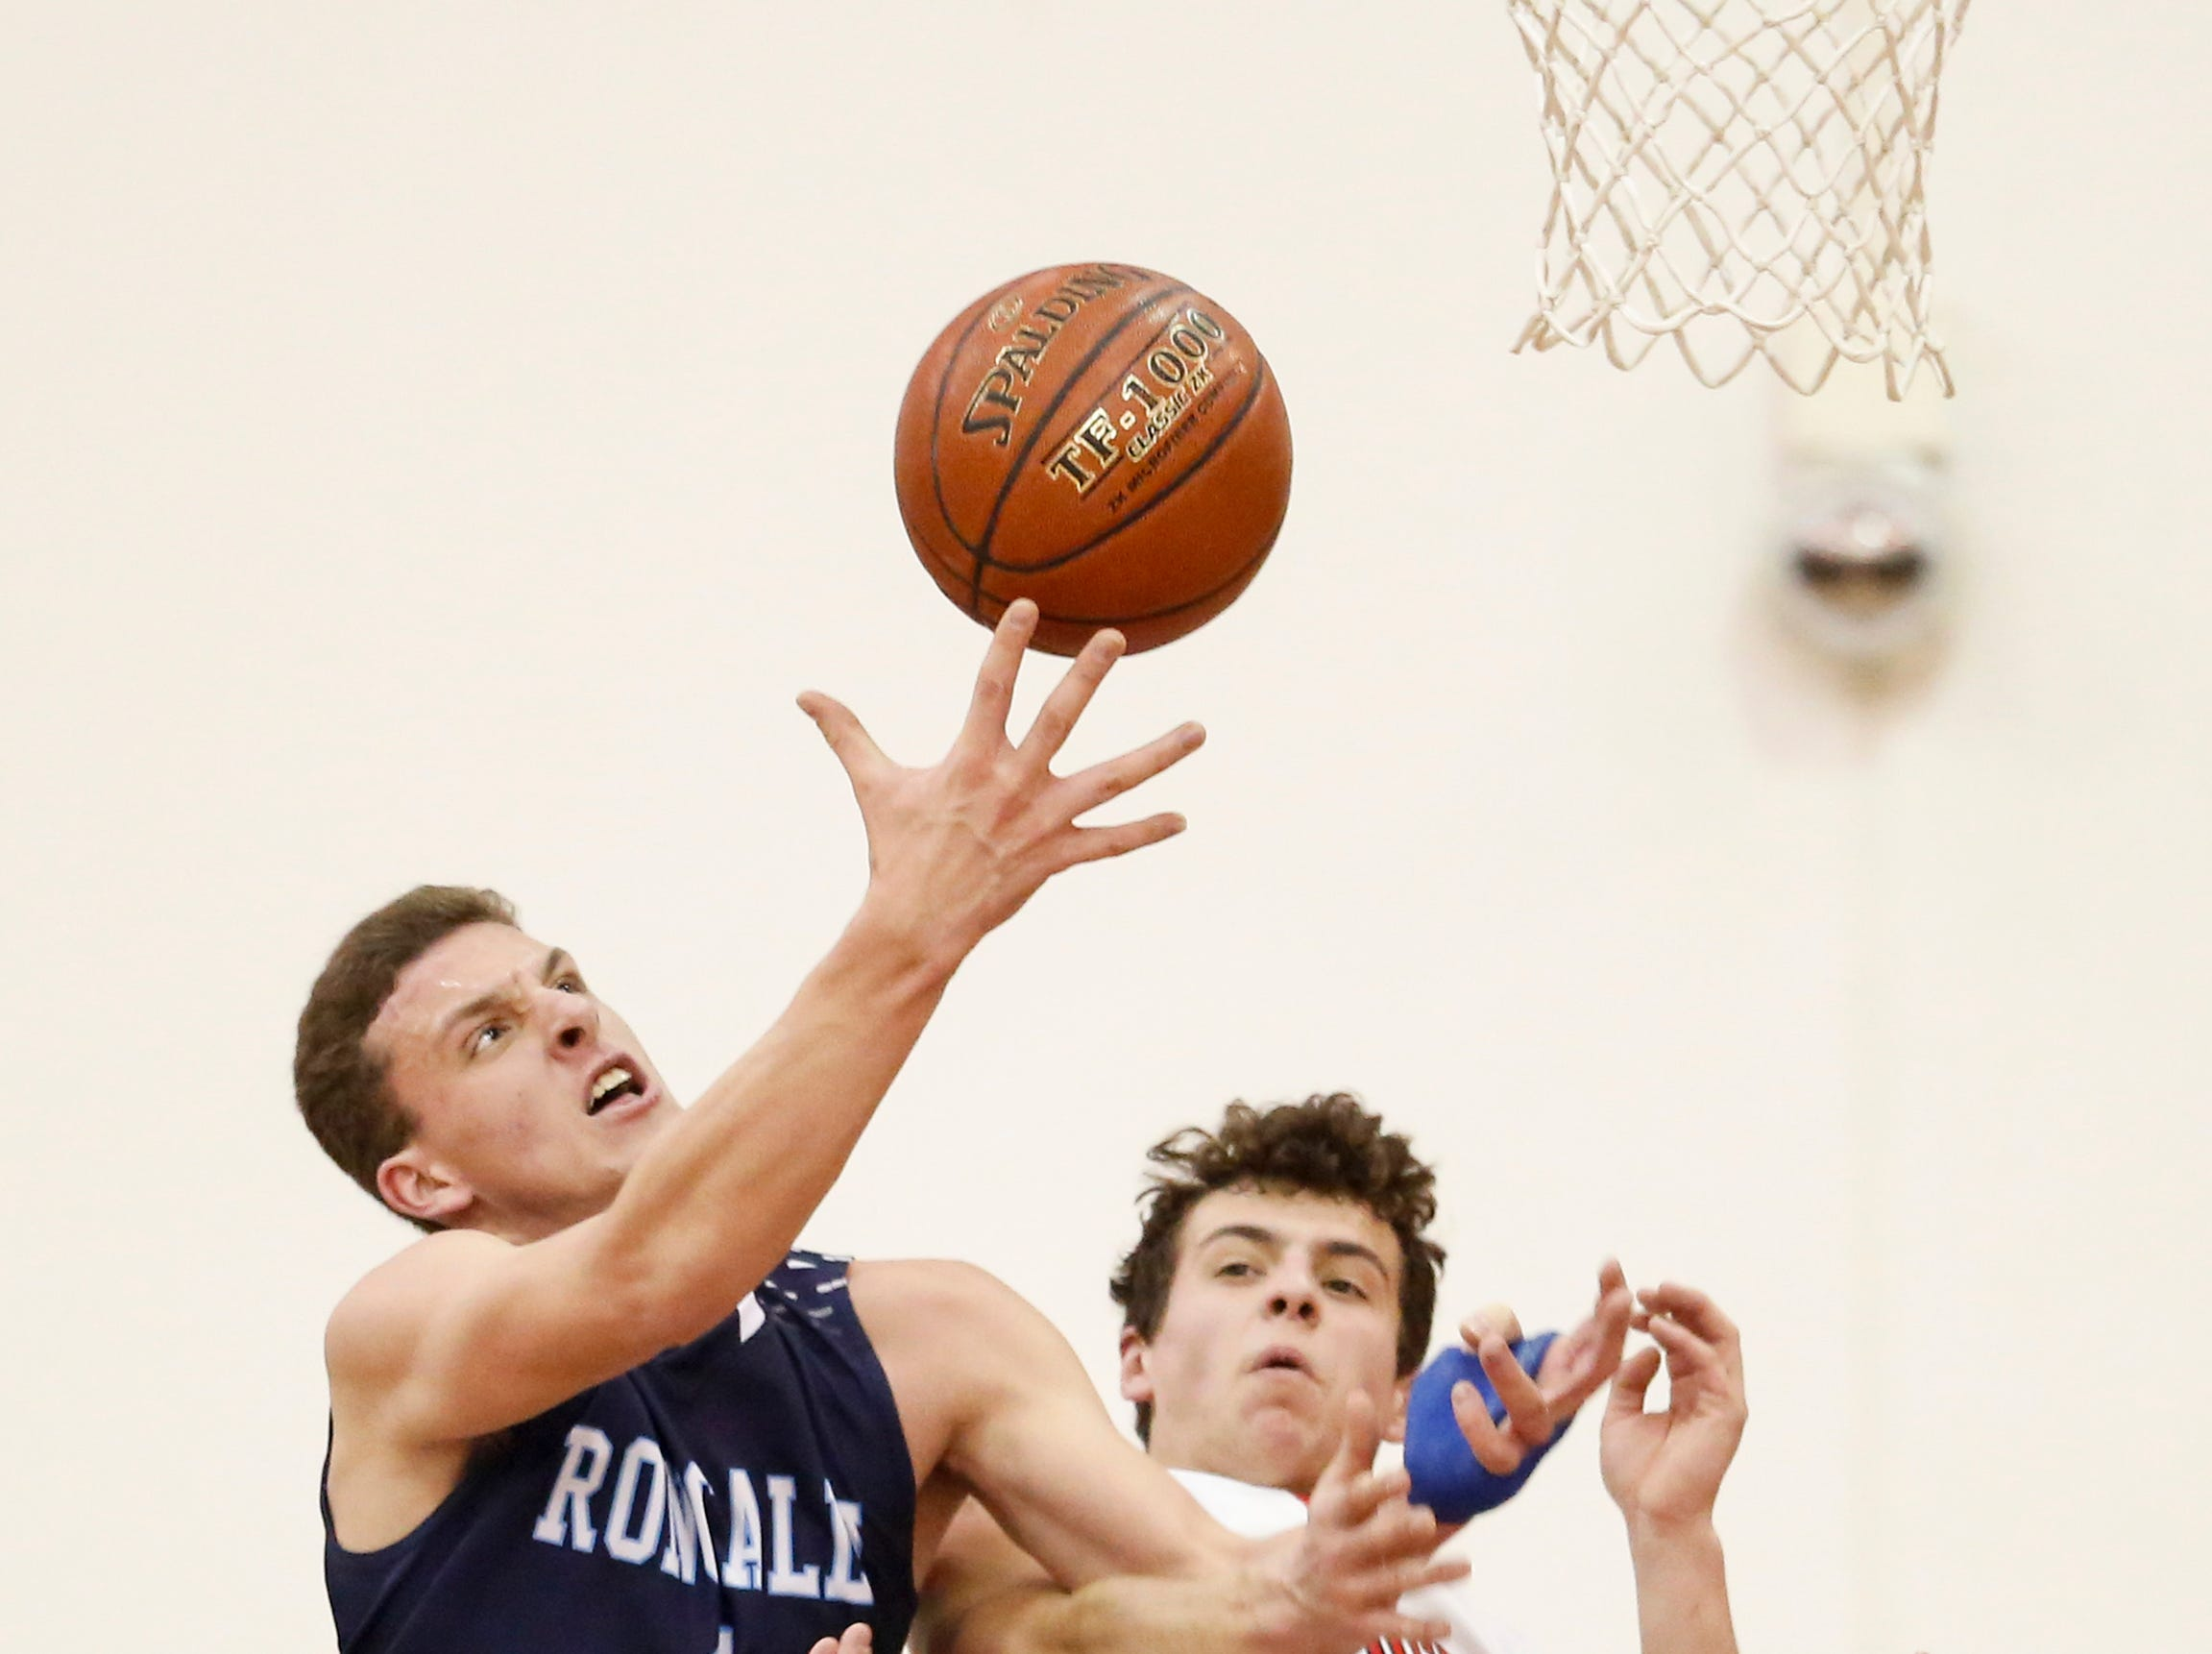 Roncalli's Daniel Burgarino (1) fends off Valders' Reese Brown for a rebound during an Eastern Wisconsin Conference game at Valders High School Thursday, January 3, 2019, in Valders, Wis. Joshua Clark/USA TODAY NETWORK-Wisconsin